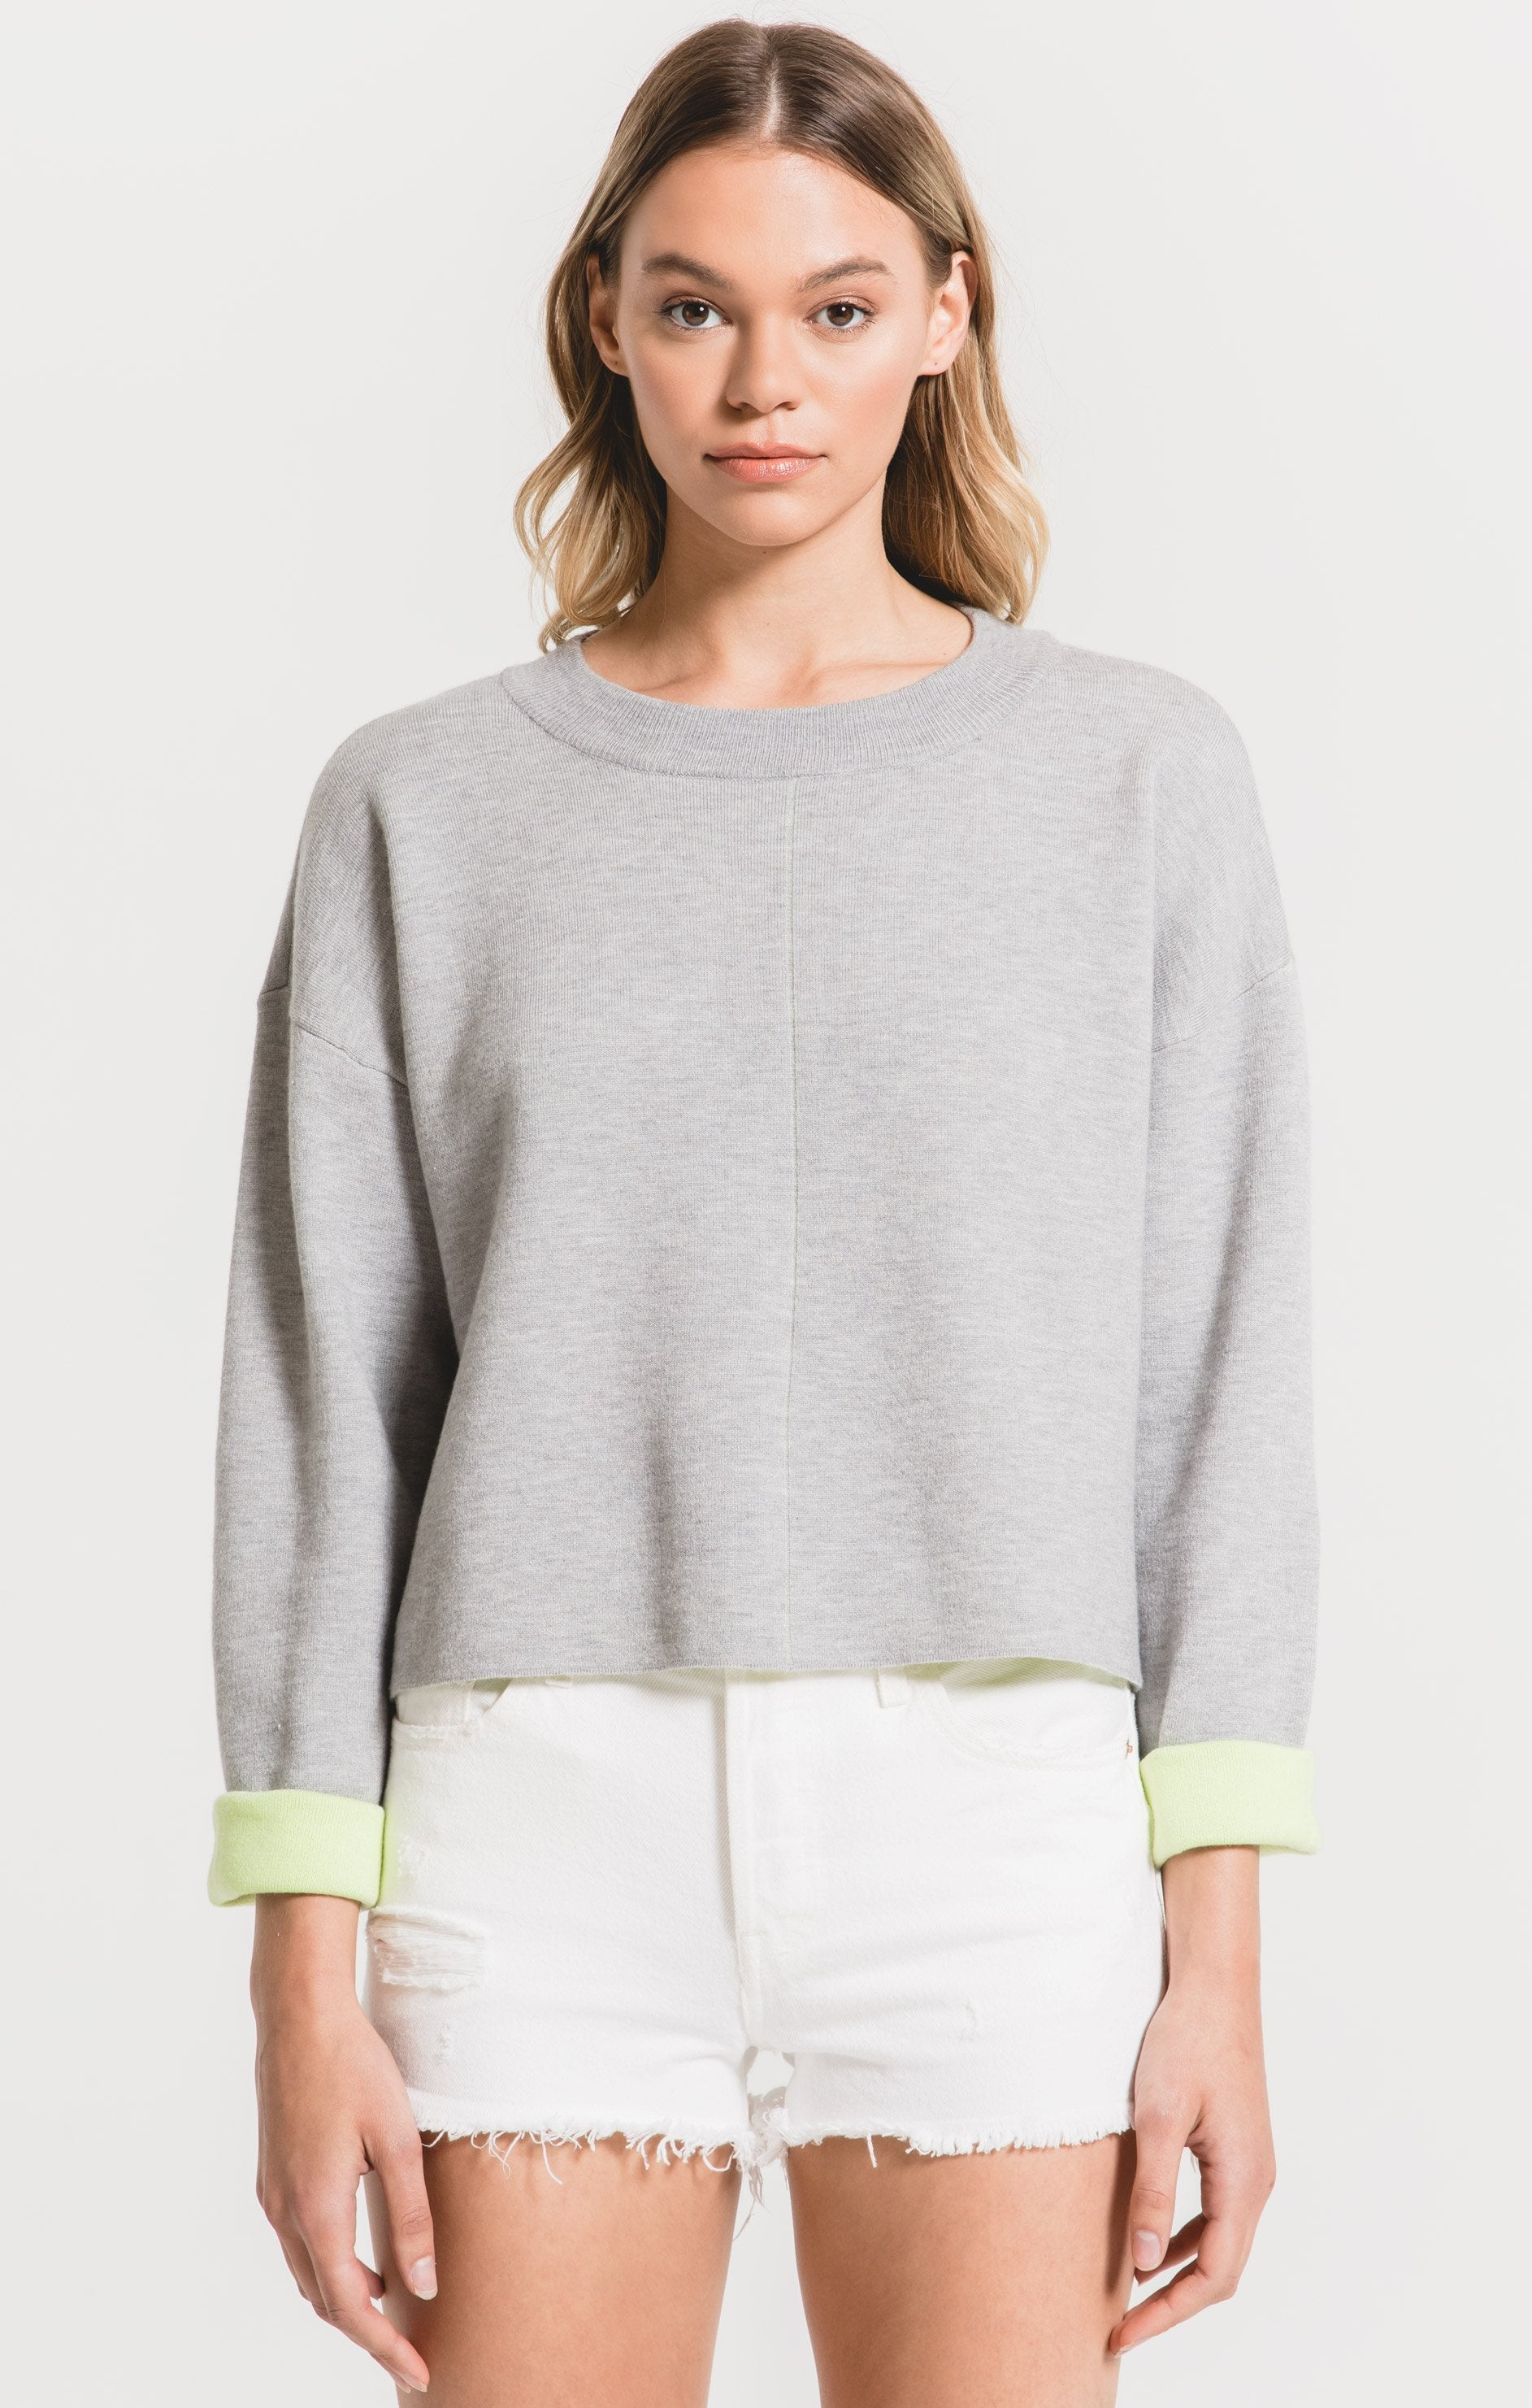 Reversible Sweater in Heather Grey/Citron